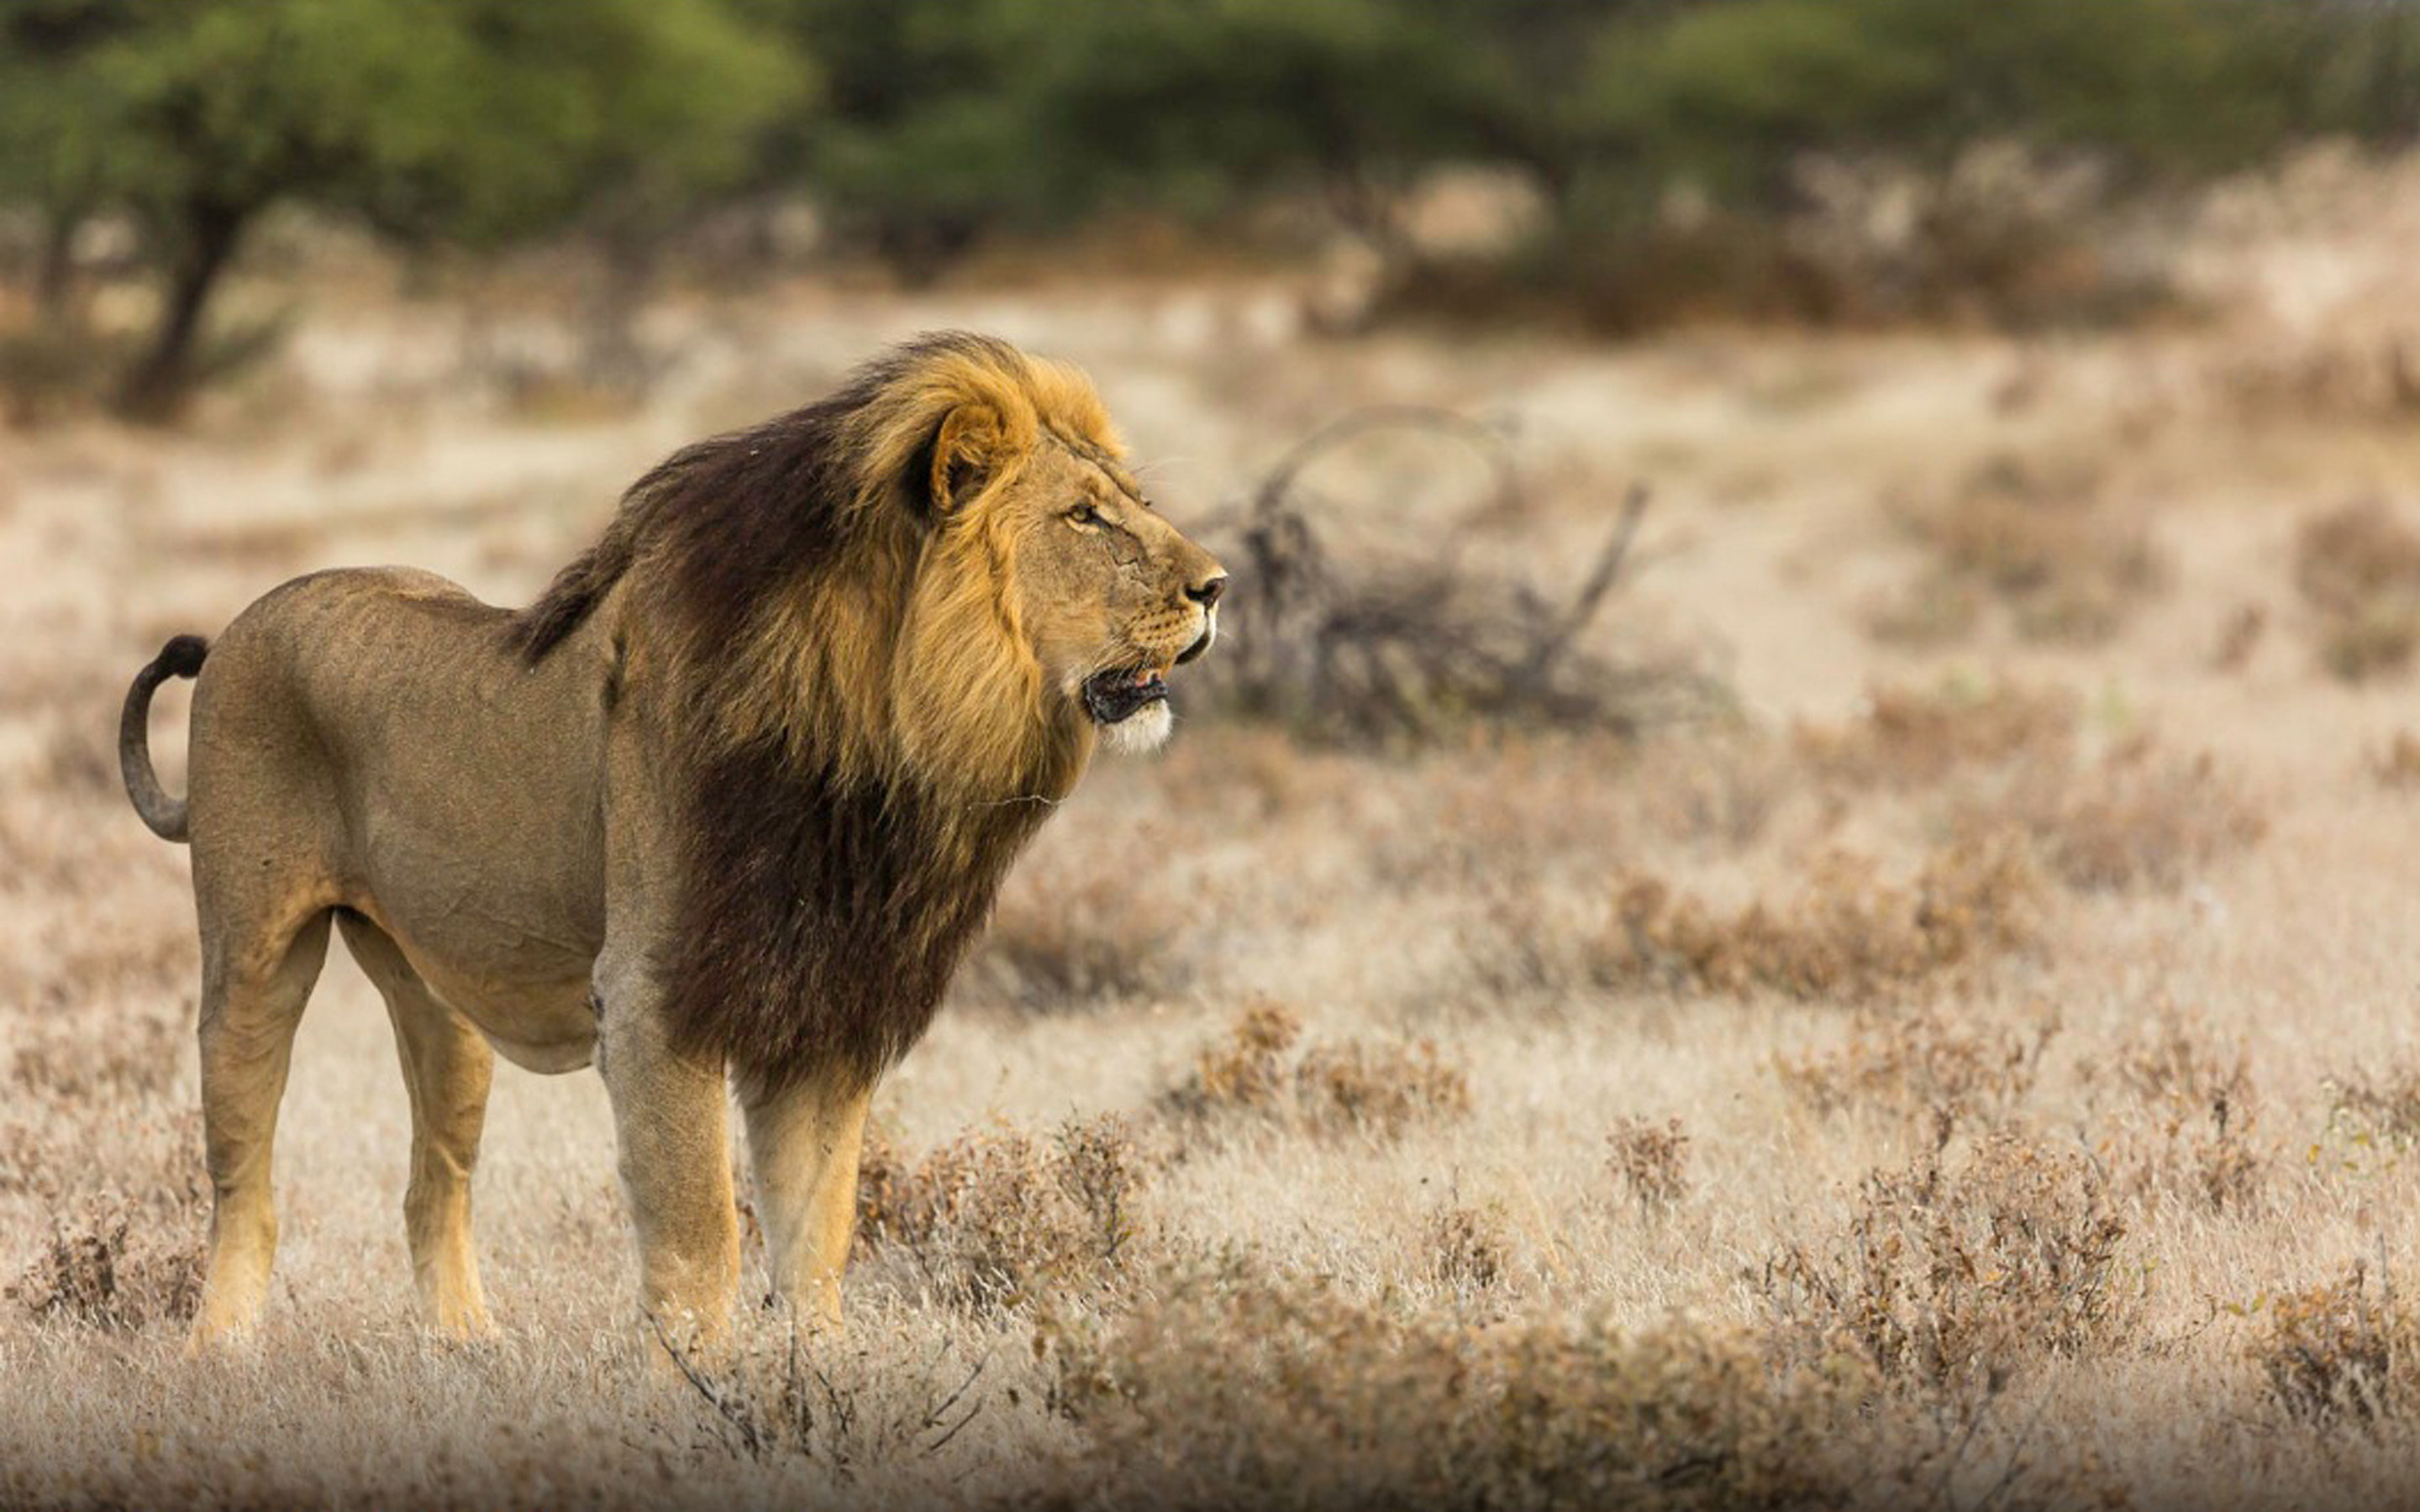 Cute Donald Duck Wallpapers African Lion Male Lions Some More Common Than The Weight